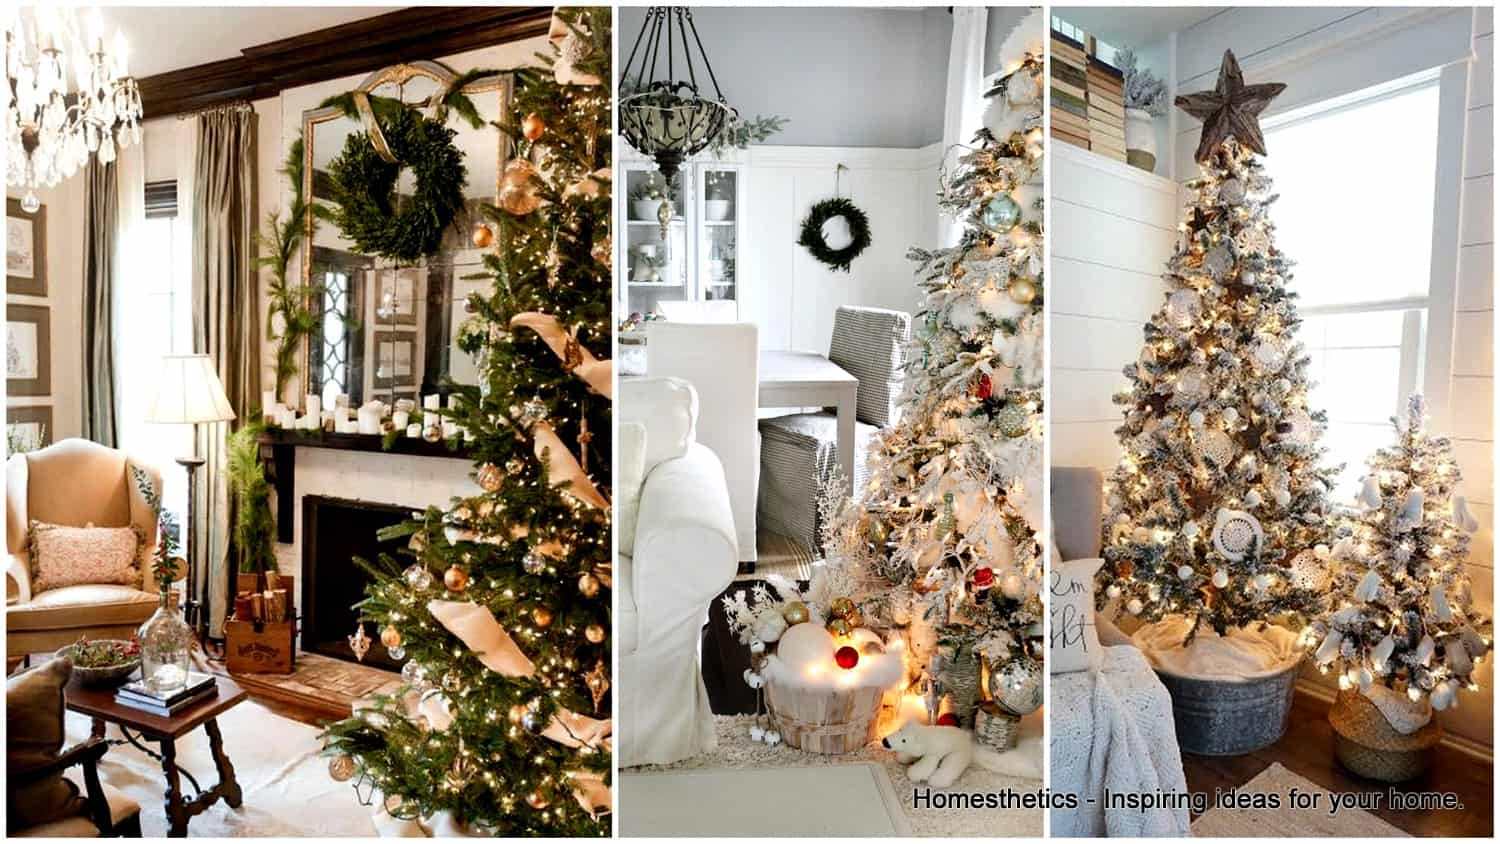 The Simple Guide To The Best Christmas Interiors Homesthetics